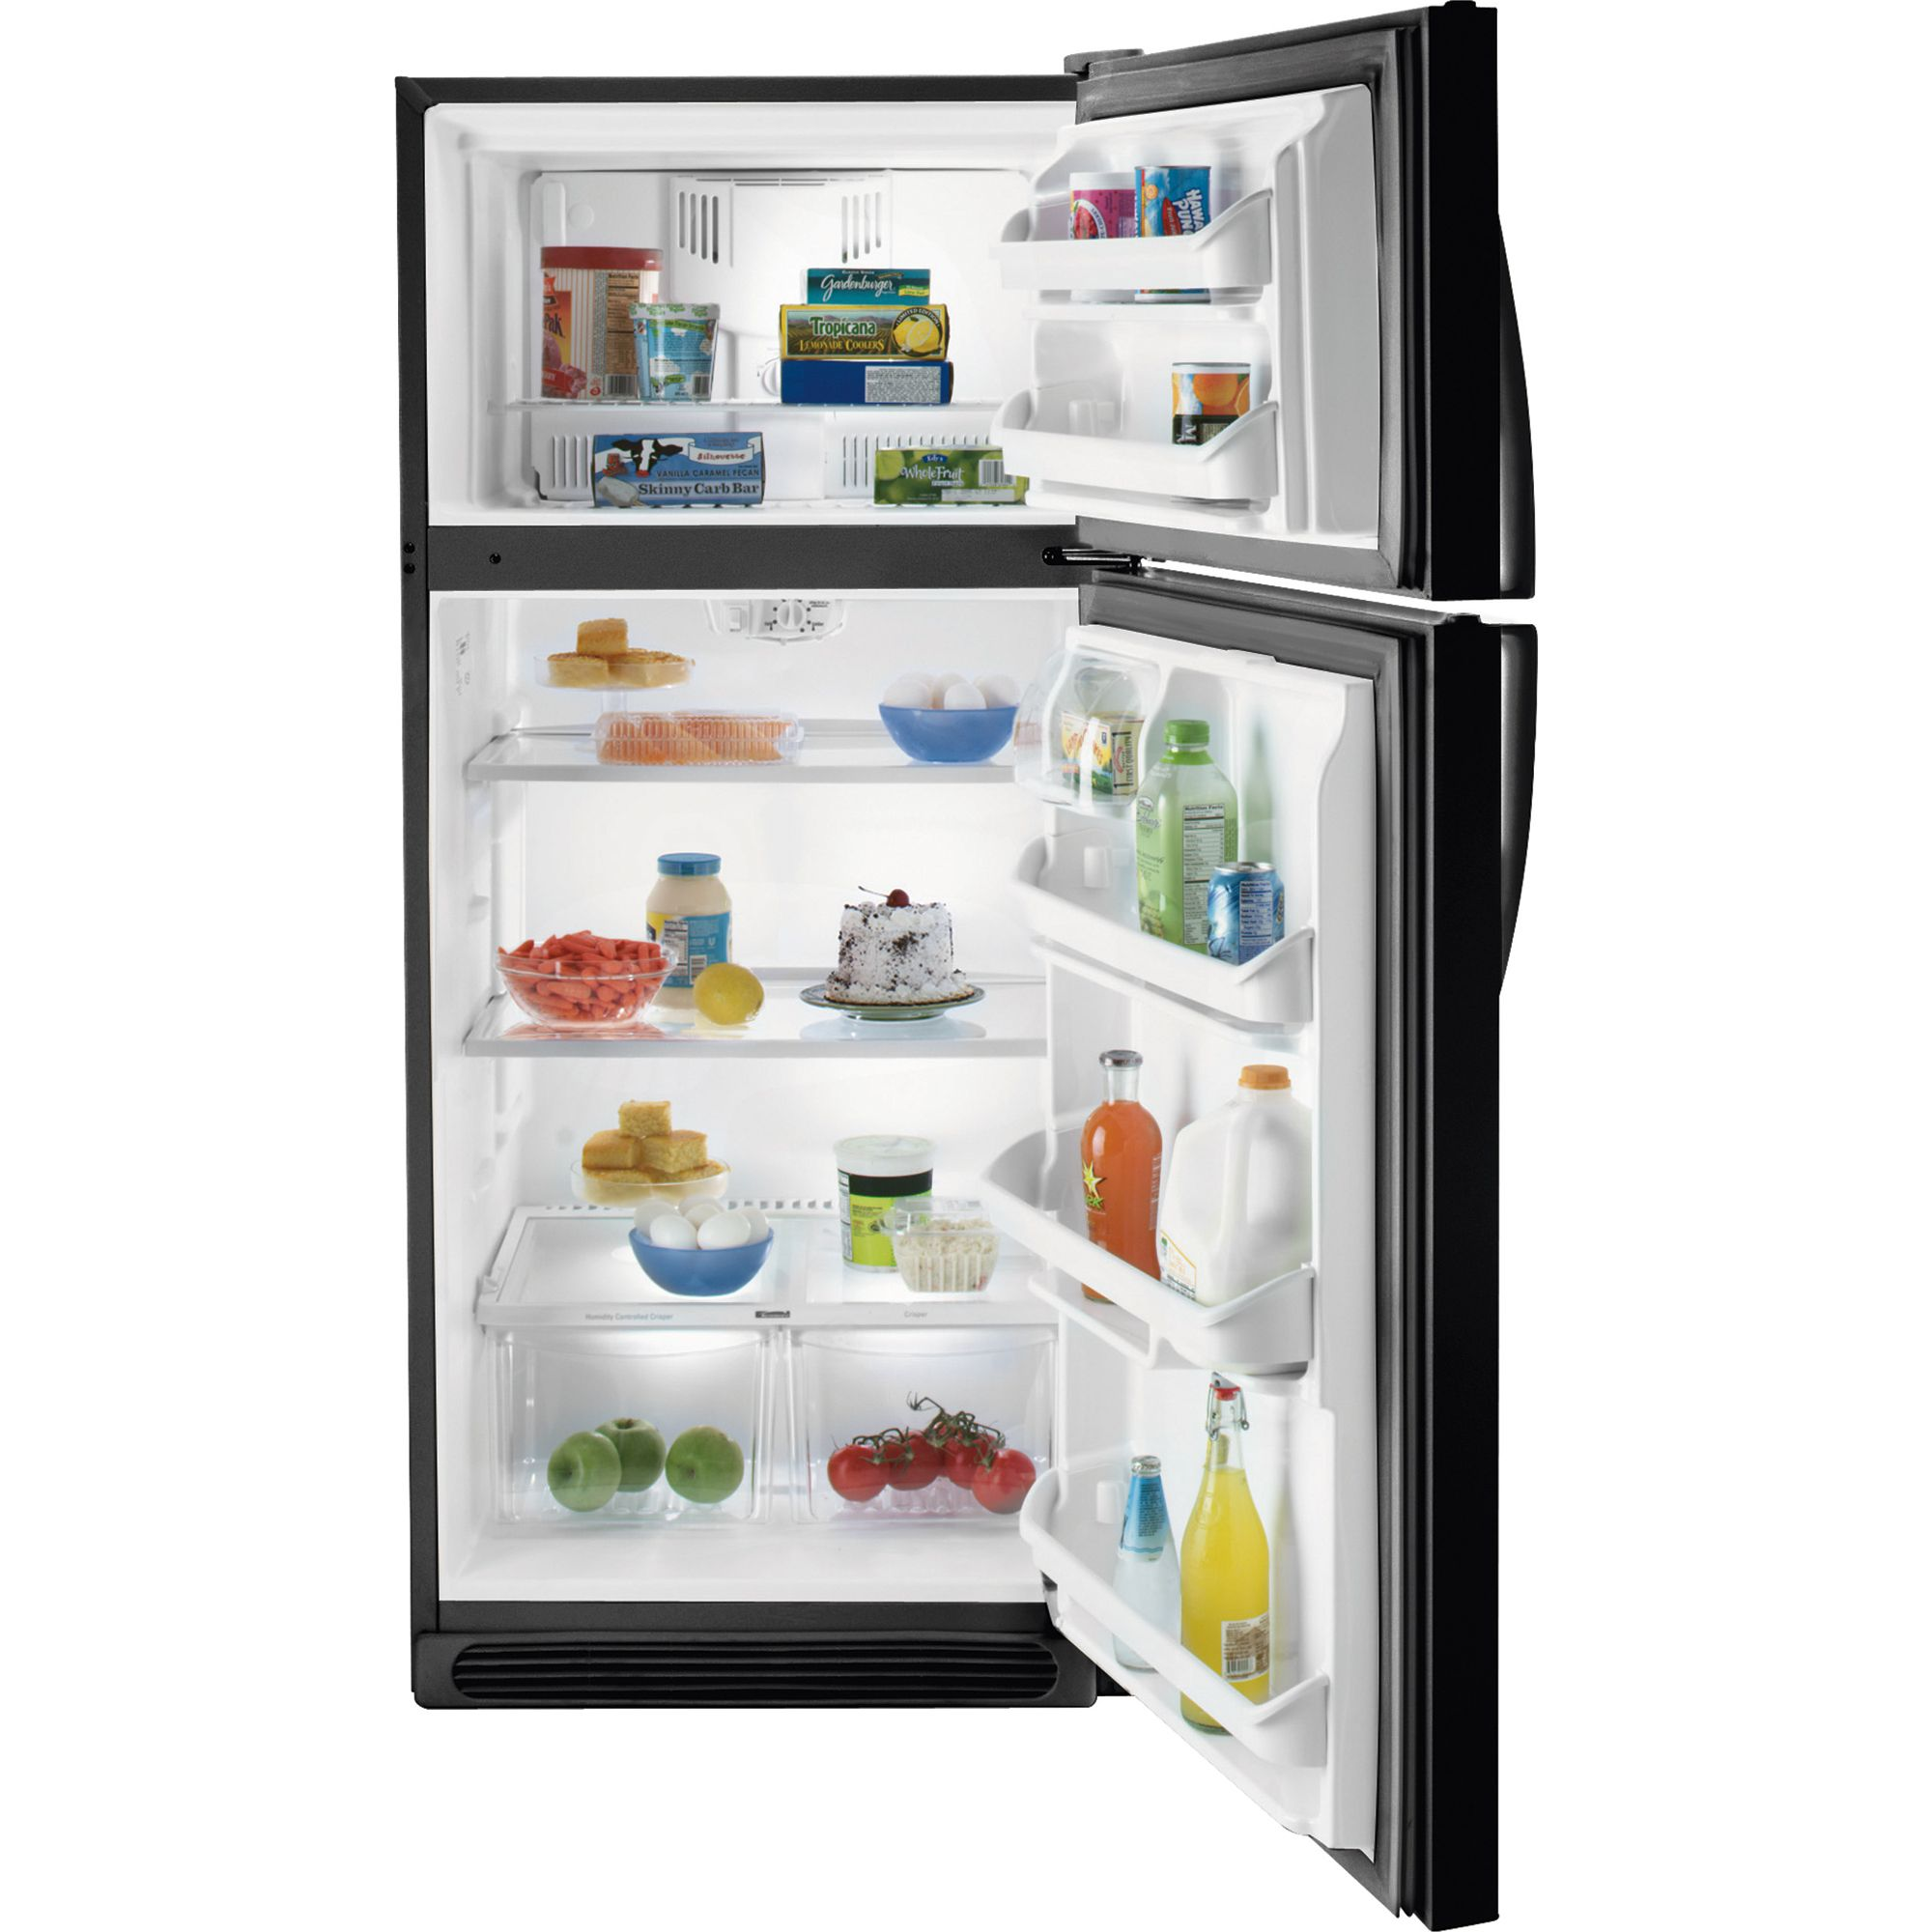 Kenmore 18.2 cu. ft. Top-Freezer Refrigerator